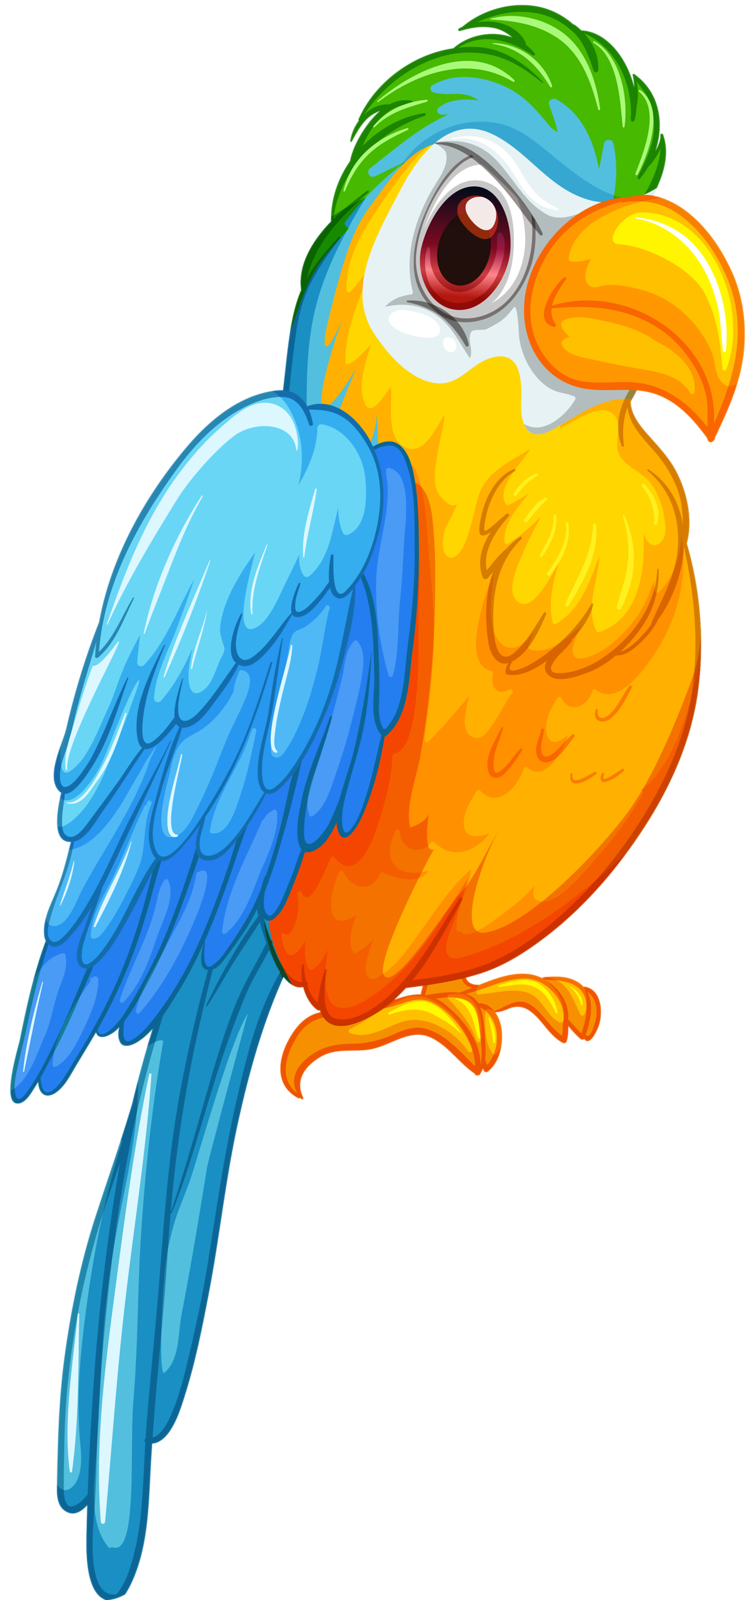 Nest clipart parrot nest.  soloveika cute birdies